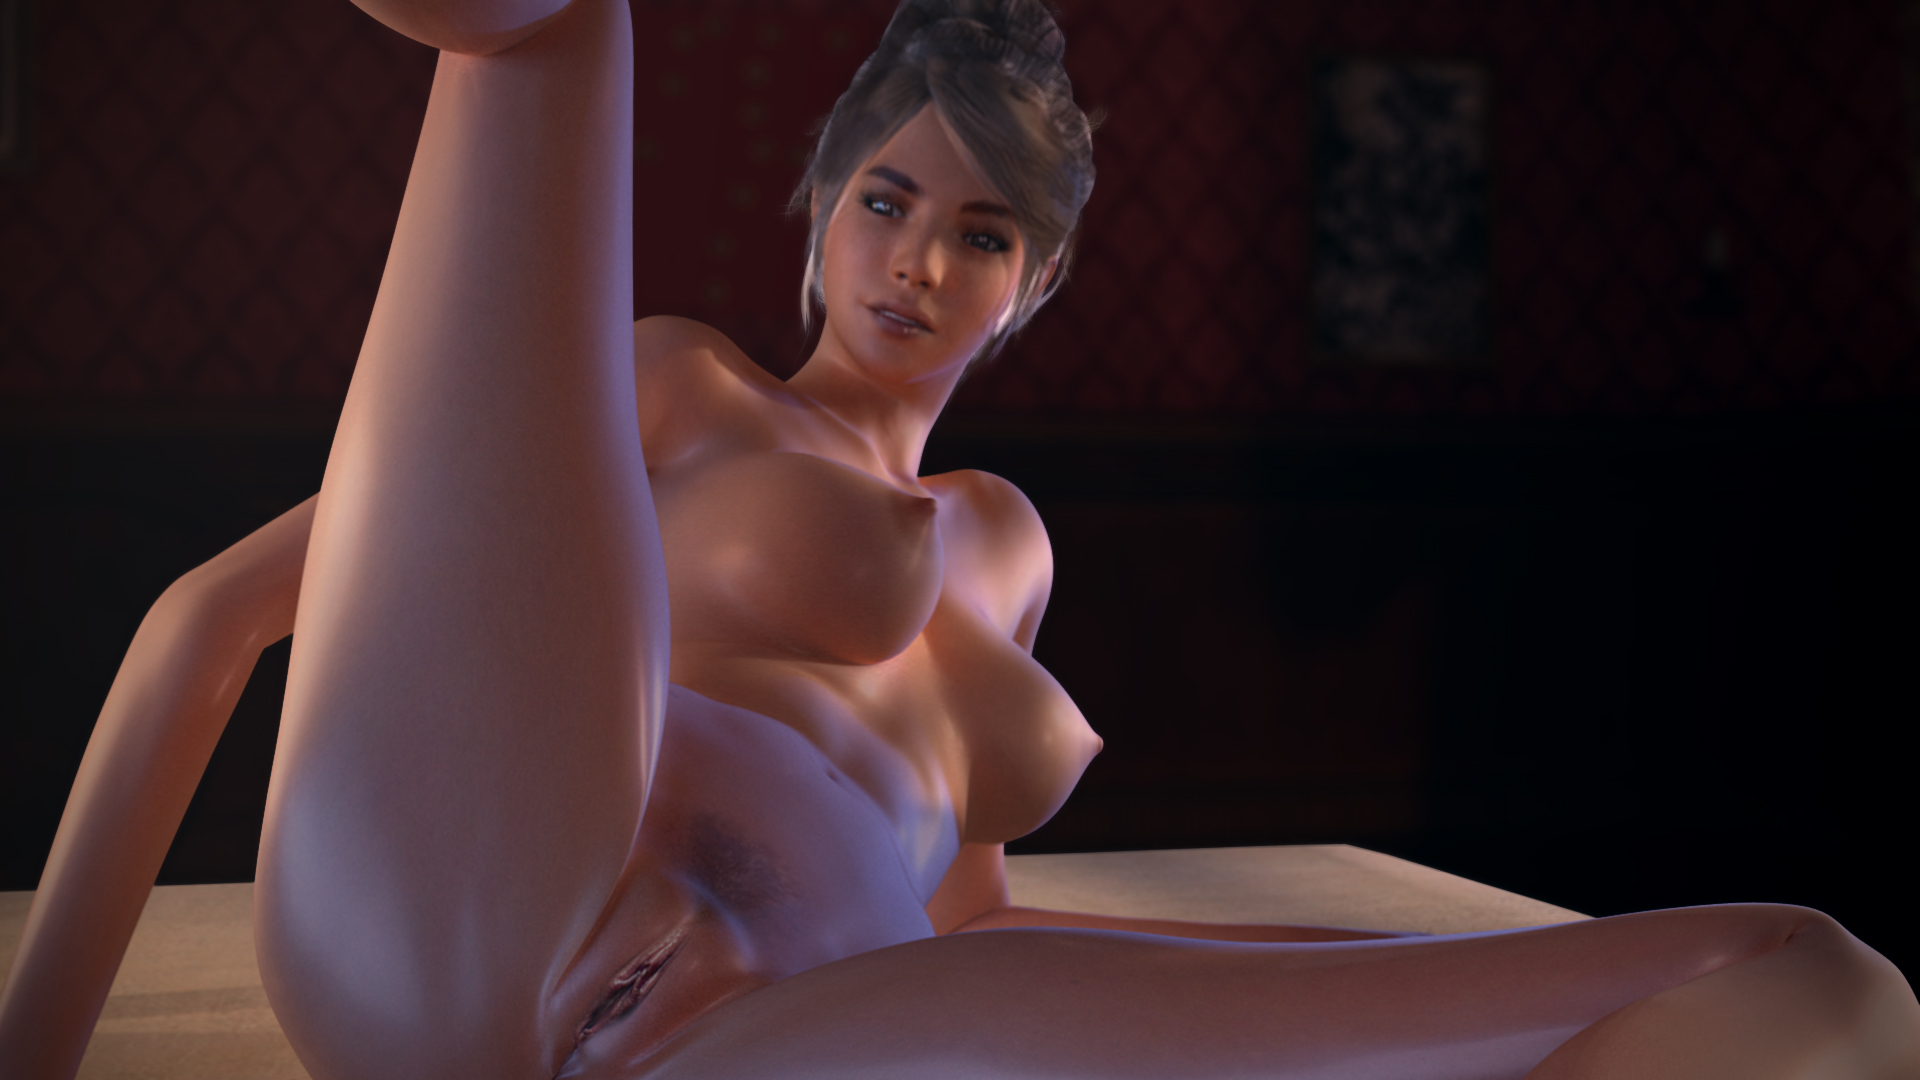 virtual naked girls closeup